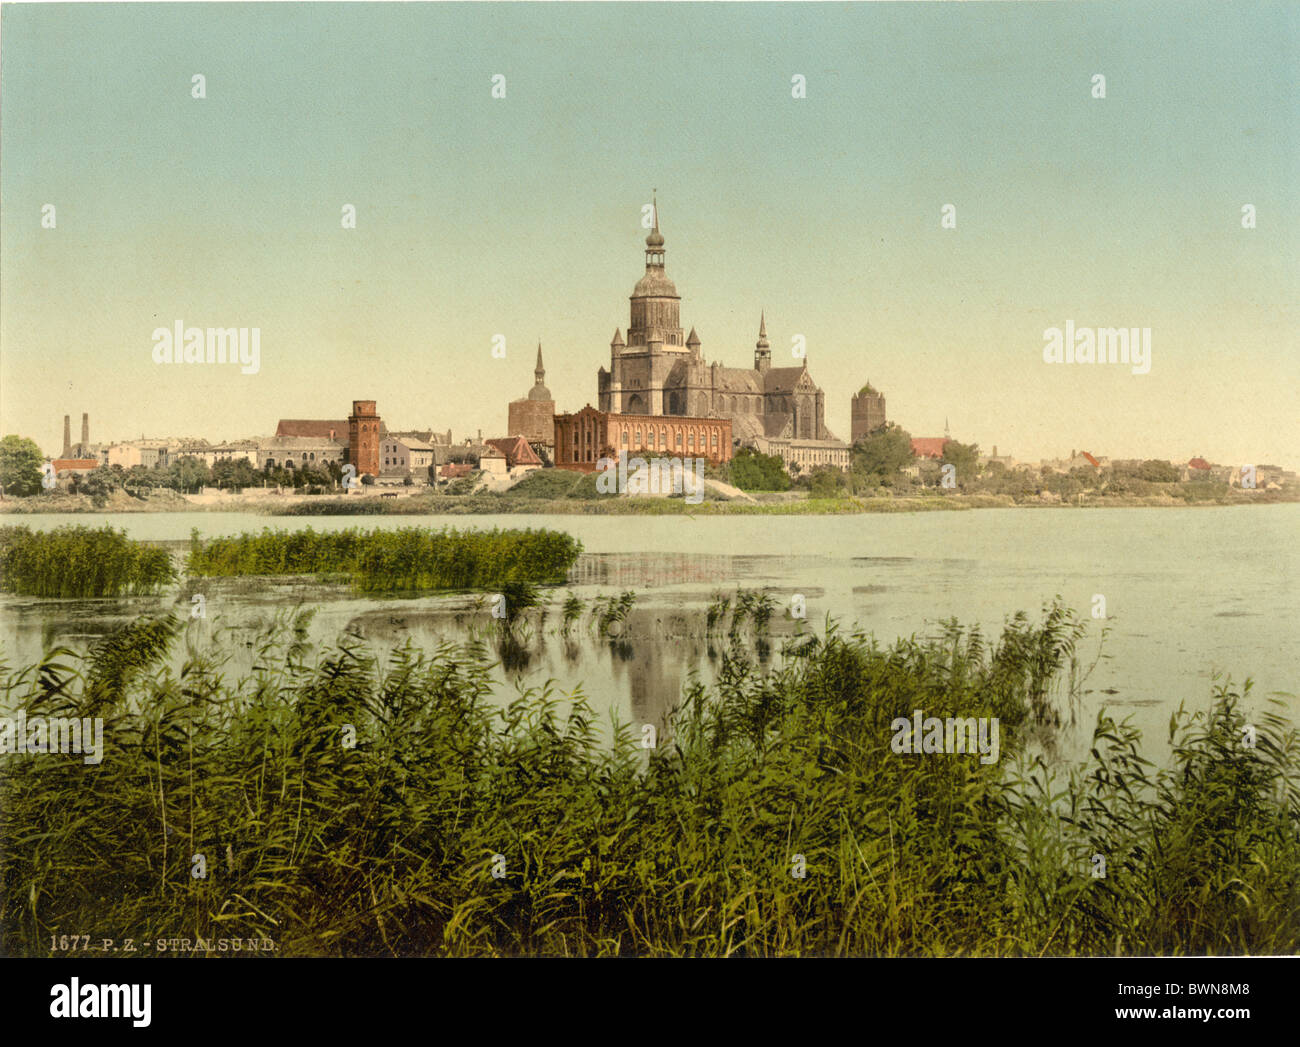 Stralsund Pomerania Germany Europe German Empire Photochrom about 1900 history historical historic old town - Stock Image